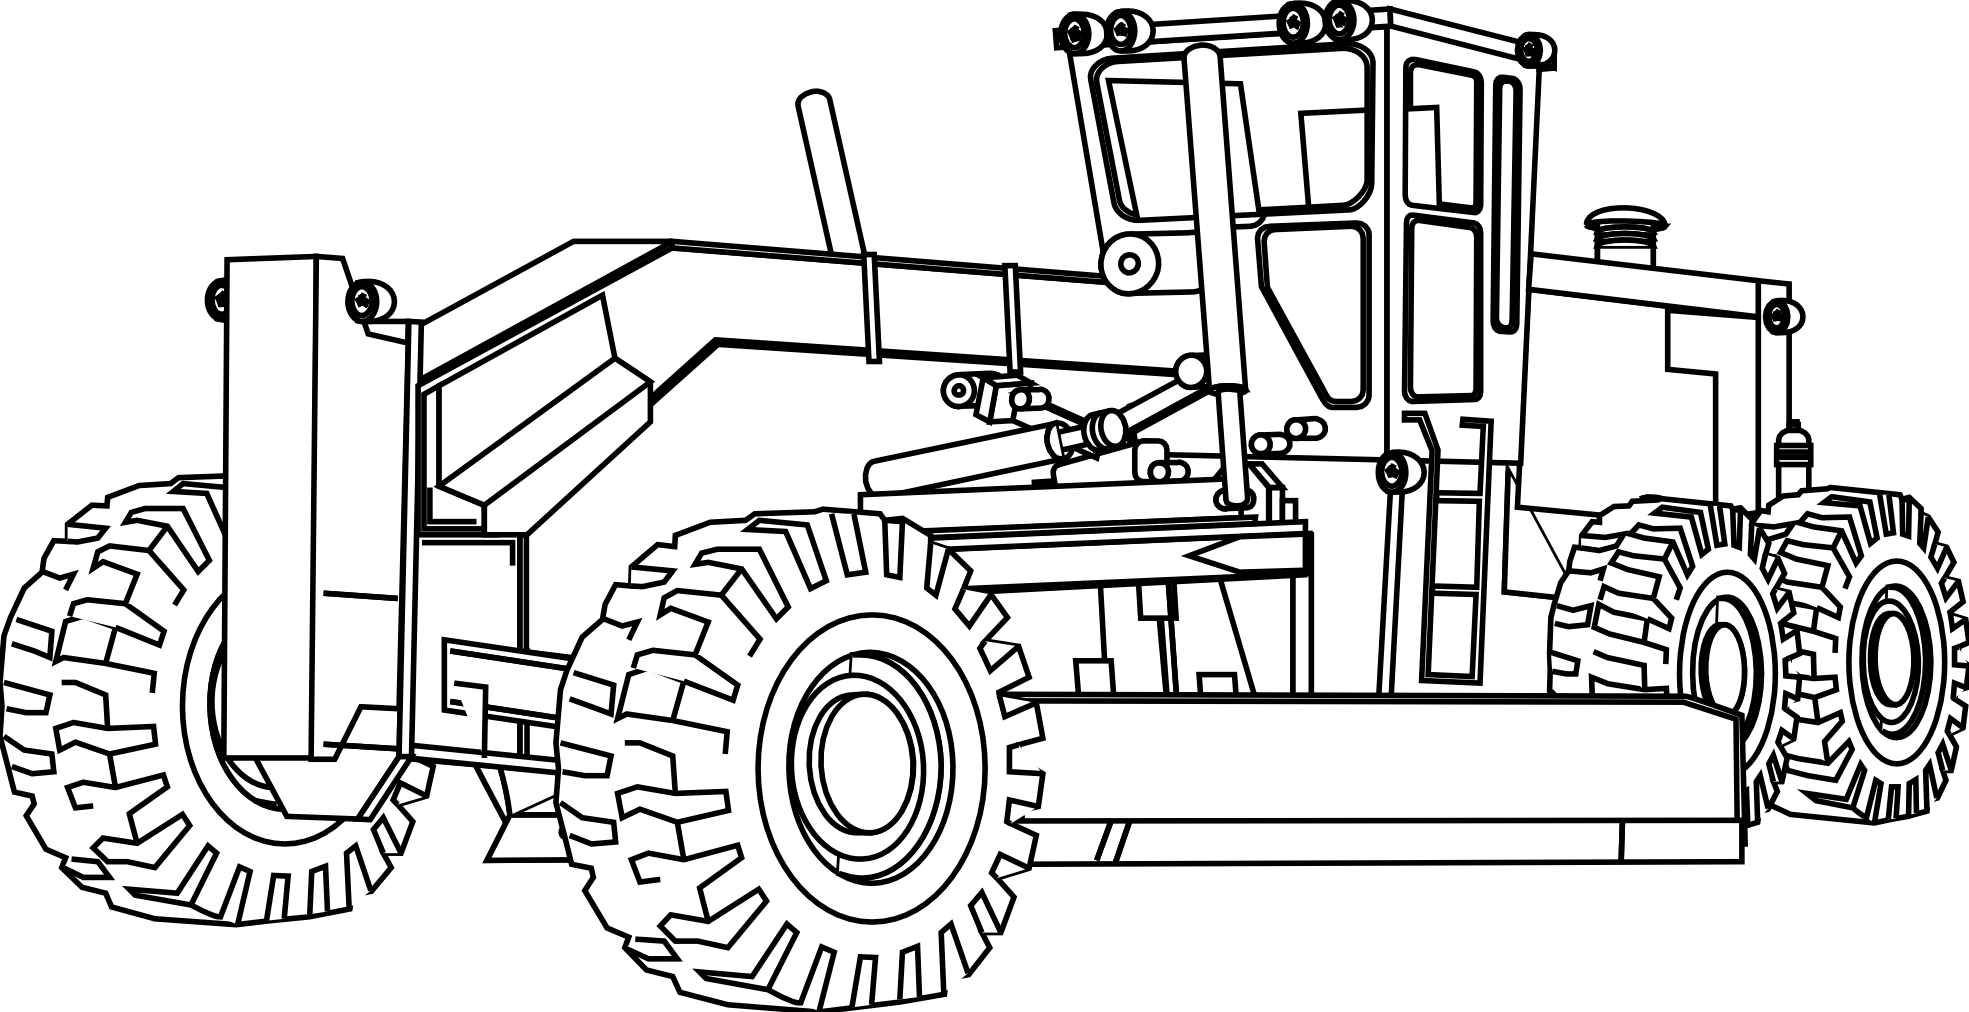 road construction equipment coloring pages - photo#1